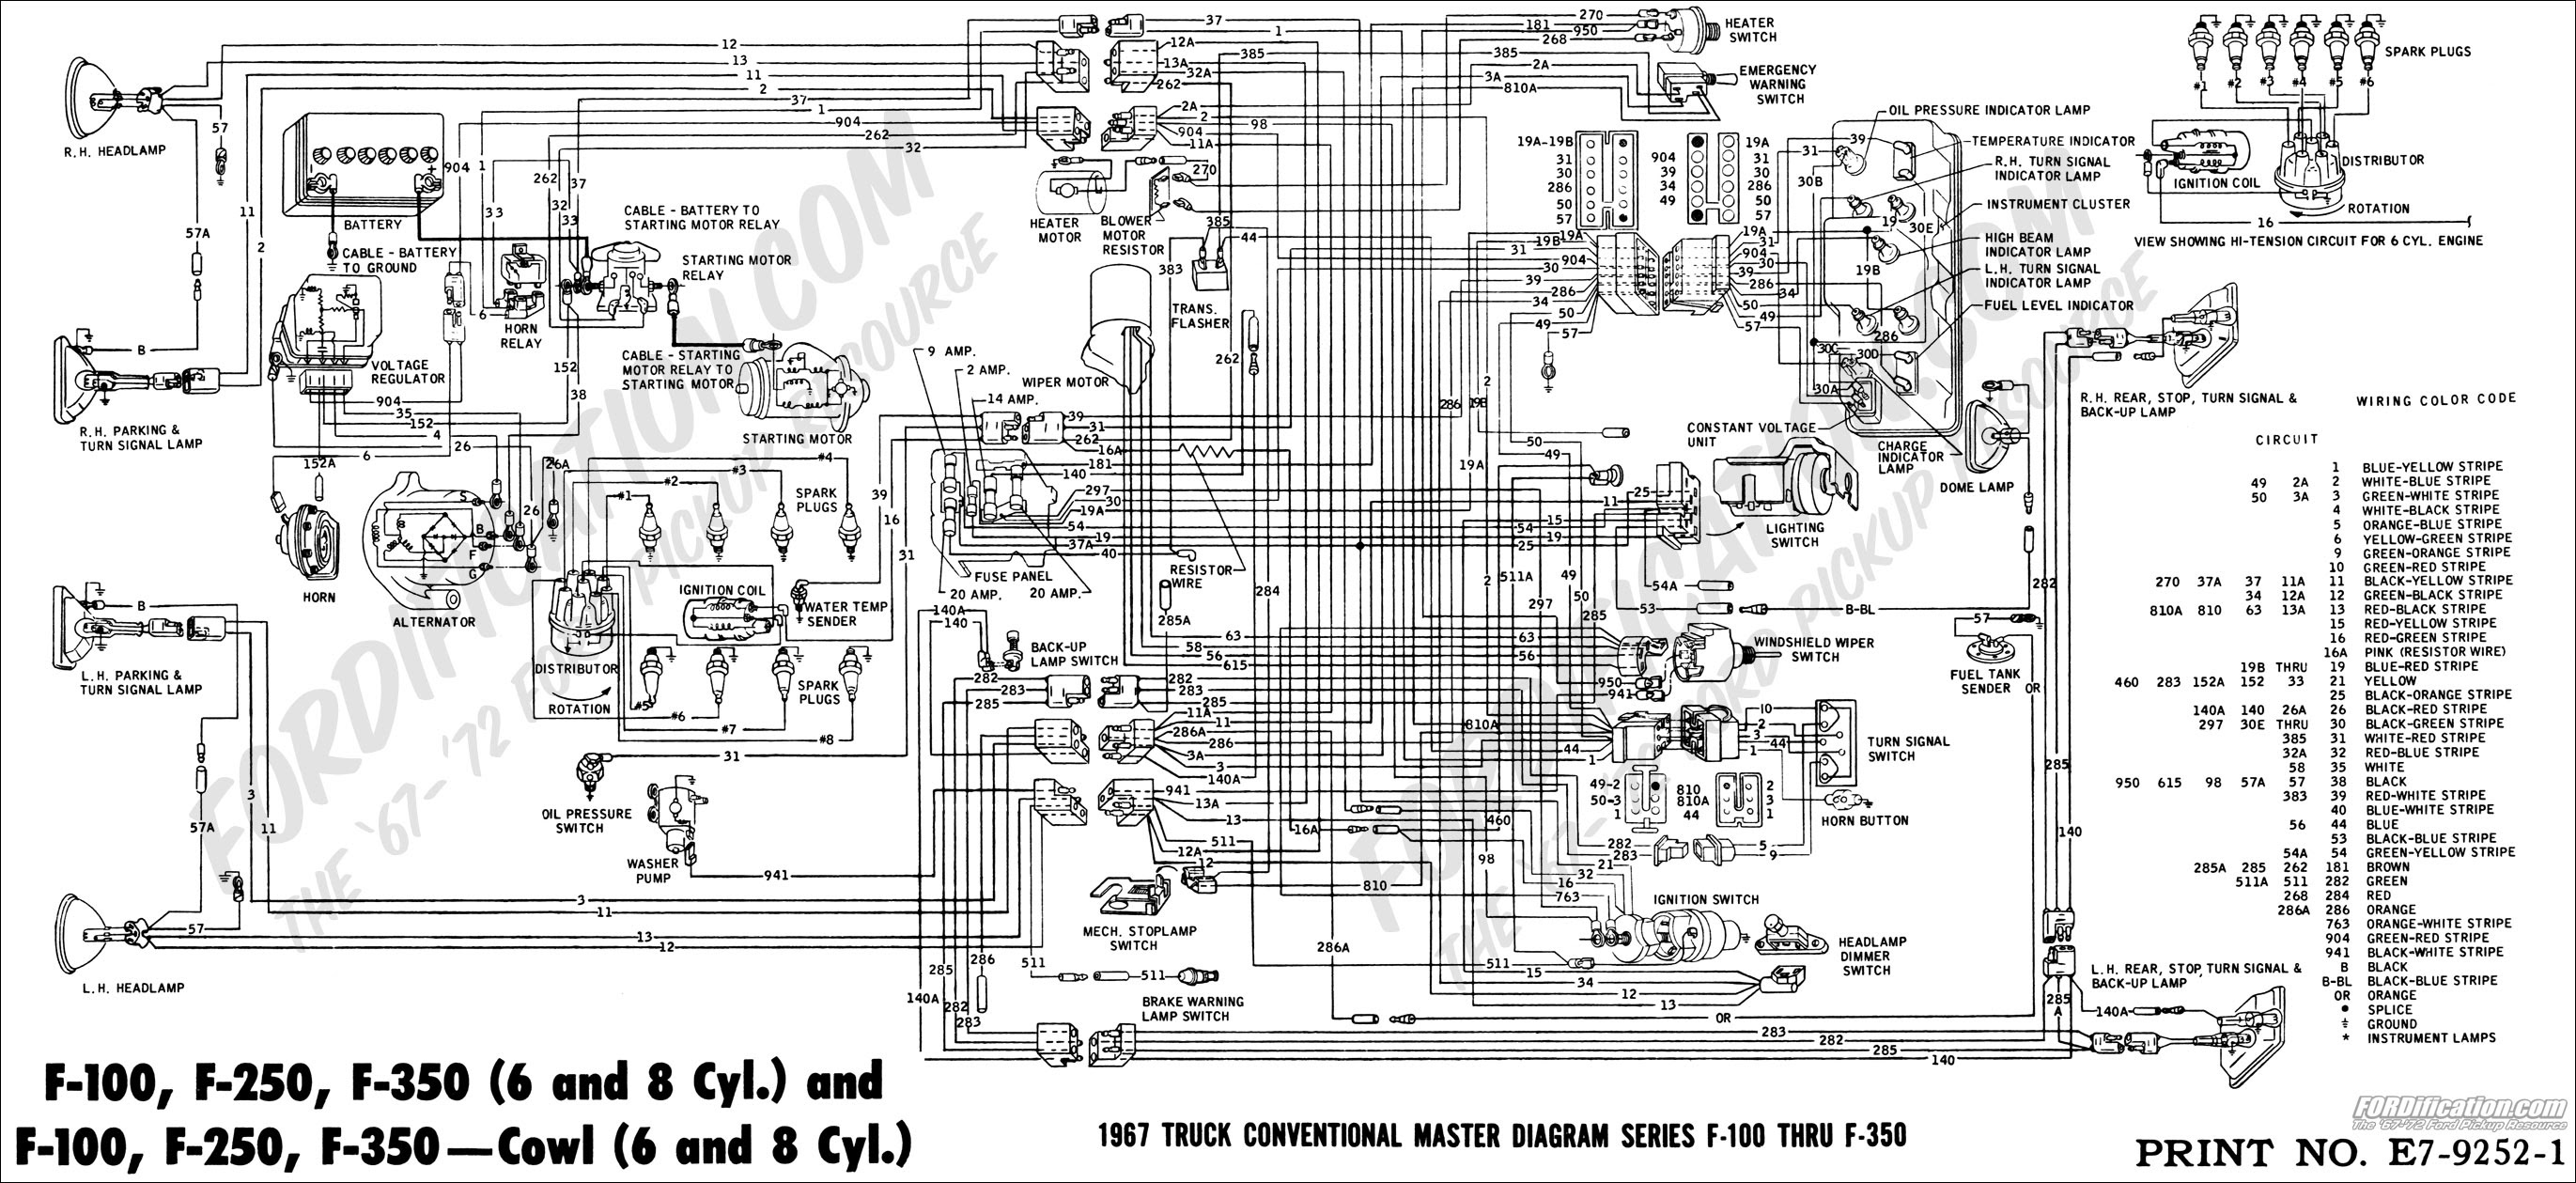 83 F100 Wiring Diagram Help Ford Truck Wiring Diagram Ultimate2 Ultimate2 Musikami It